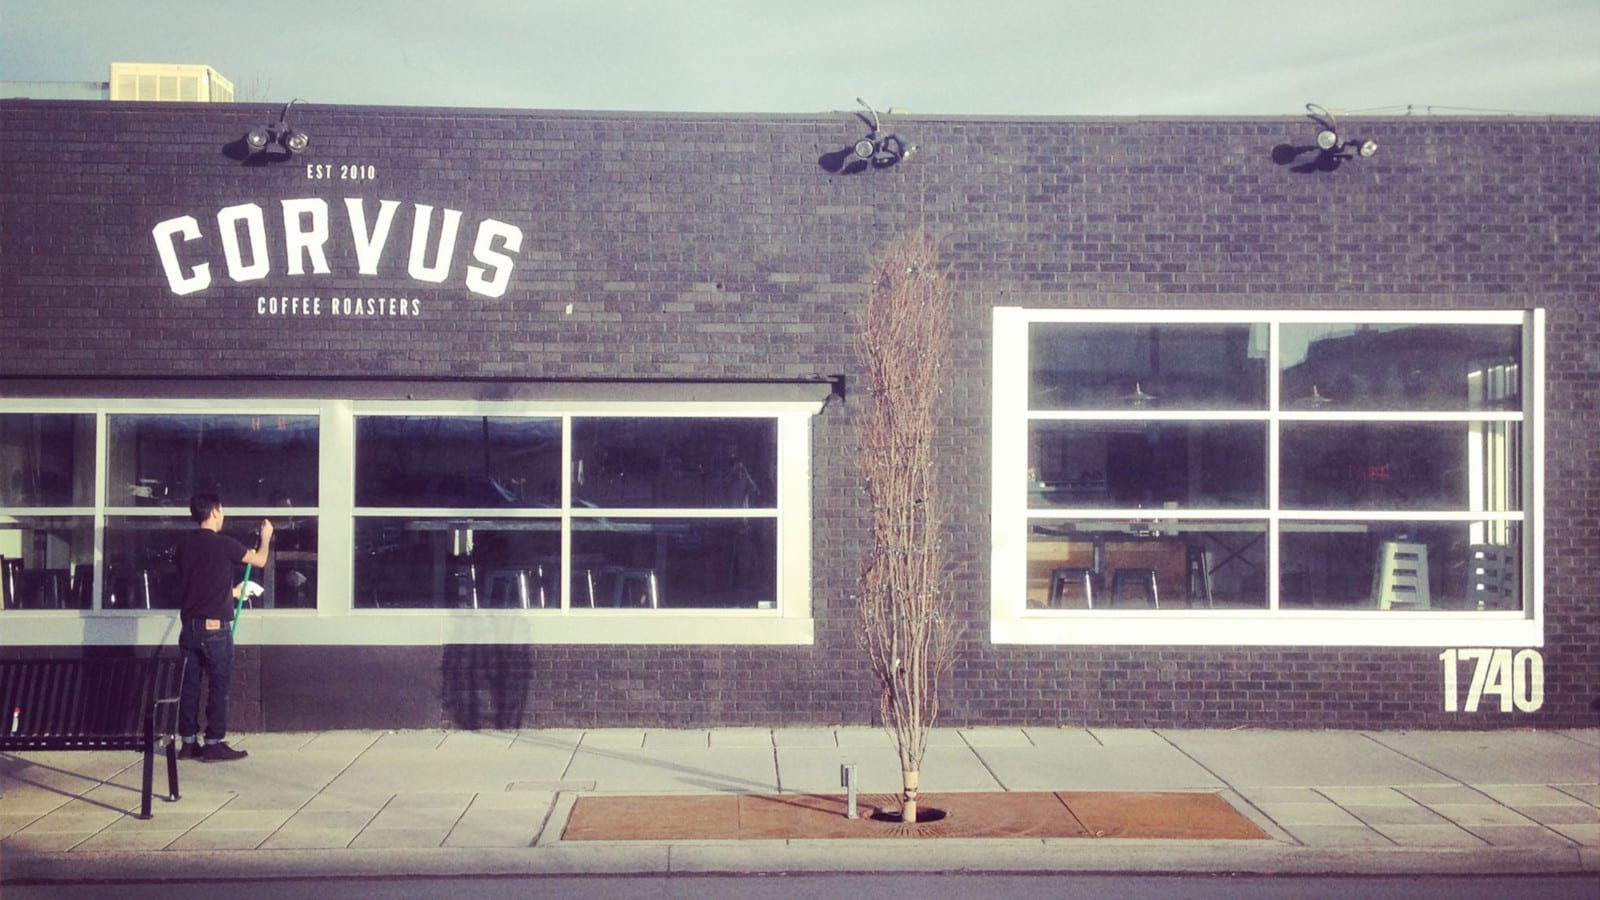 Denver Coffeeshops Corvus Coffee Roasters